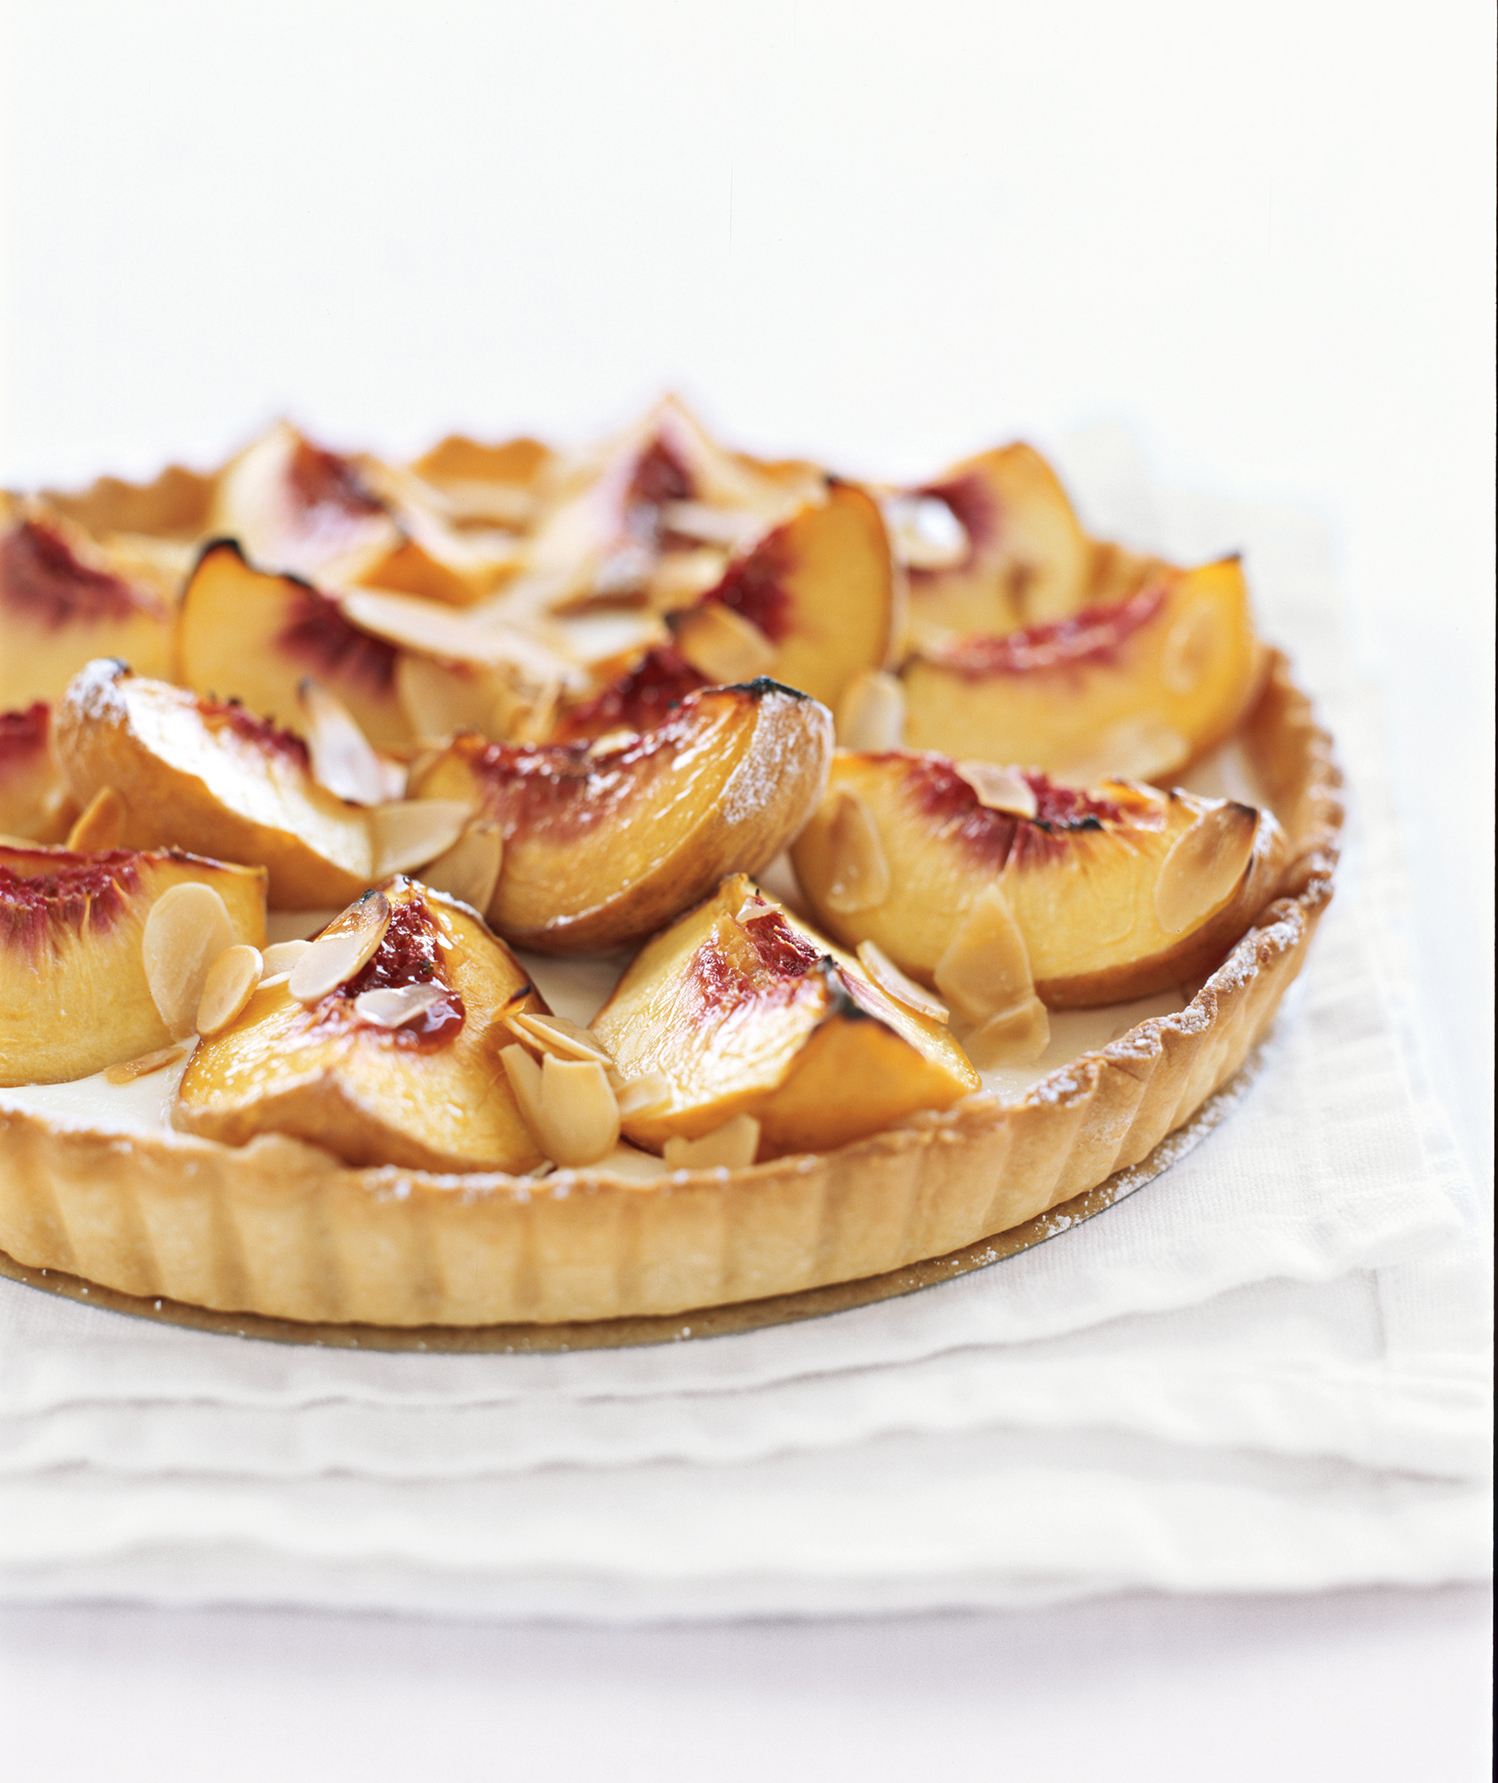 0507peach-sour-cream-tart